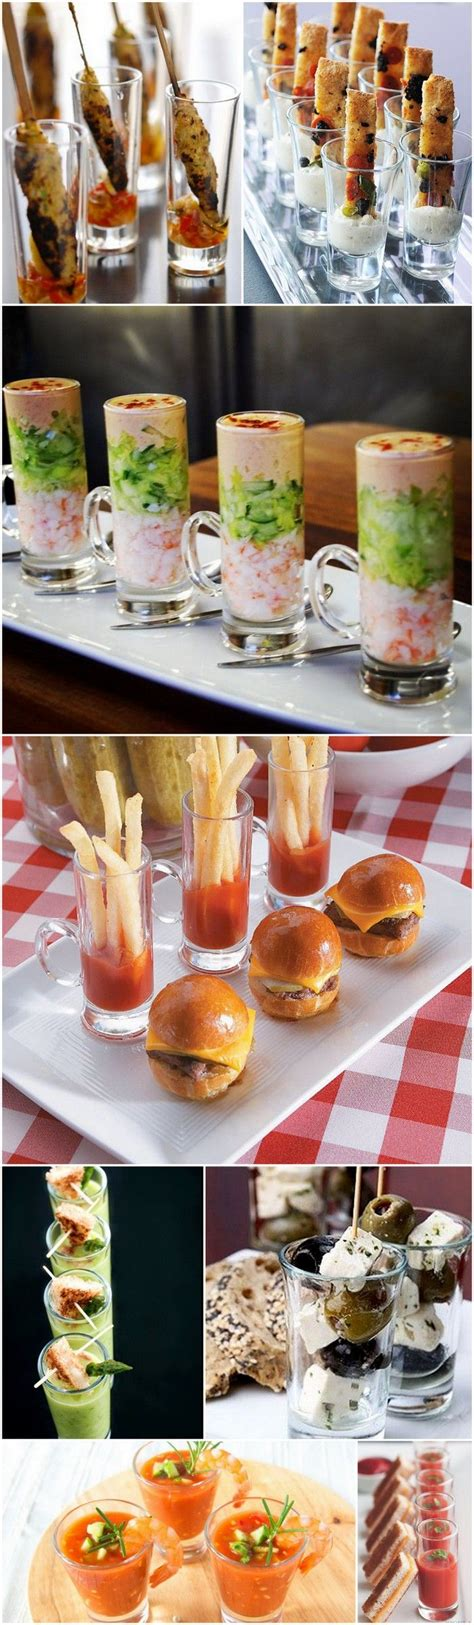 canapes ideas 25 best ideas about canapes on canape